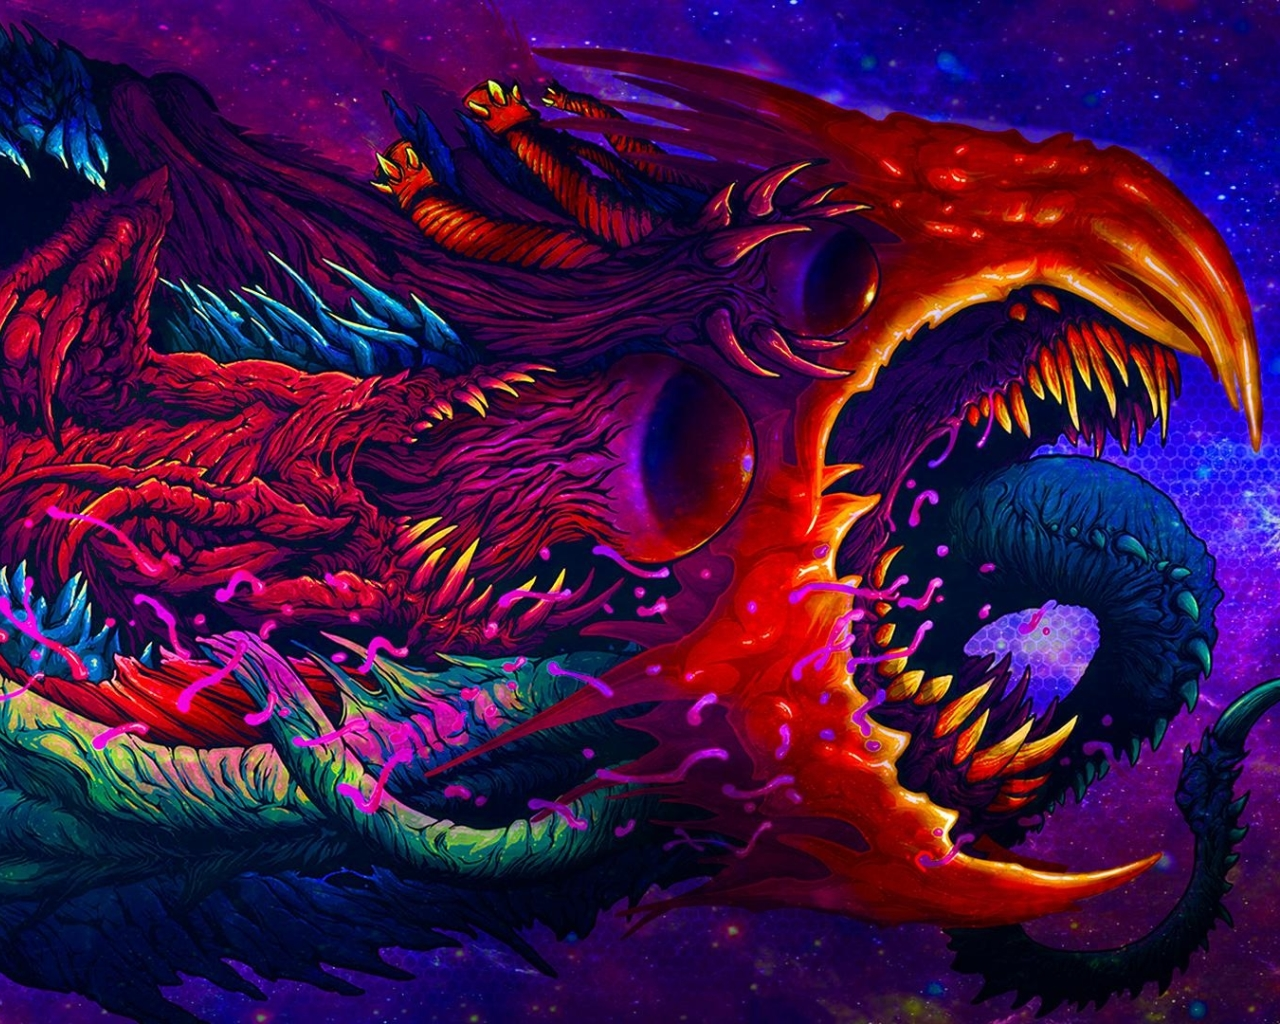 1280x1024 Hyper Beast Csgo Art Cool 1280x1024 Resolution Wallpaper Hd Games 4k Wallpapers Images Photos And Background Wallpapers Den